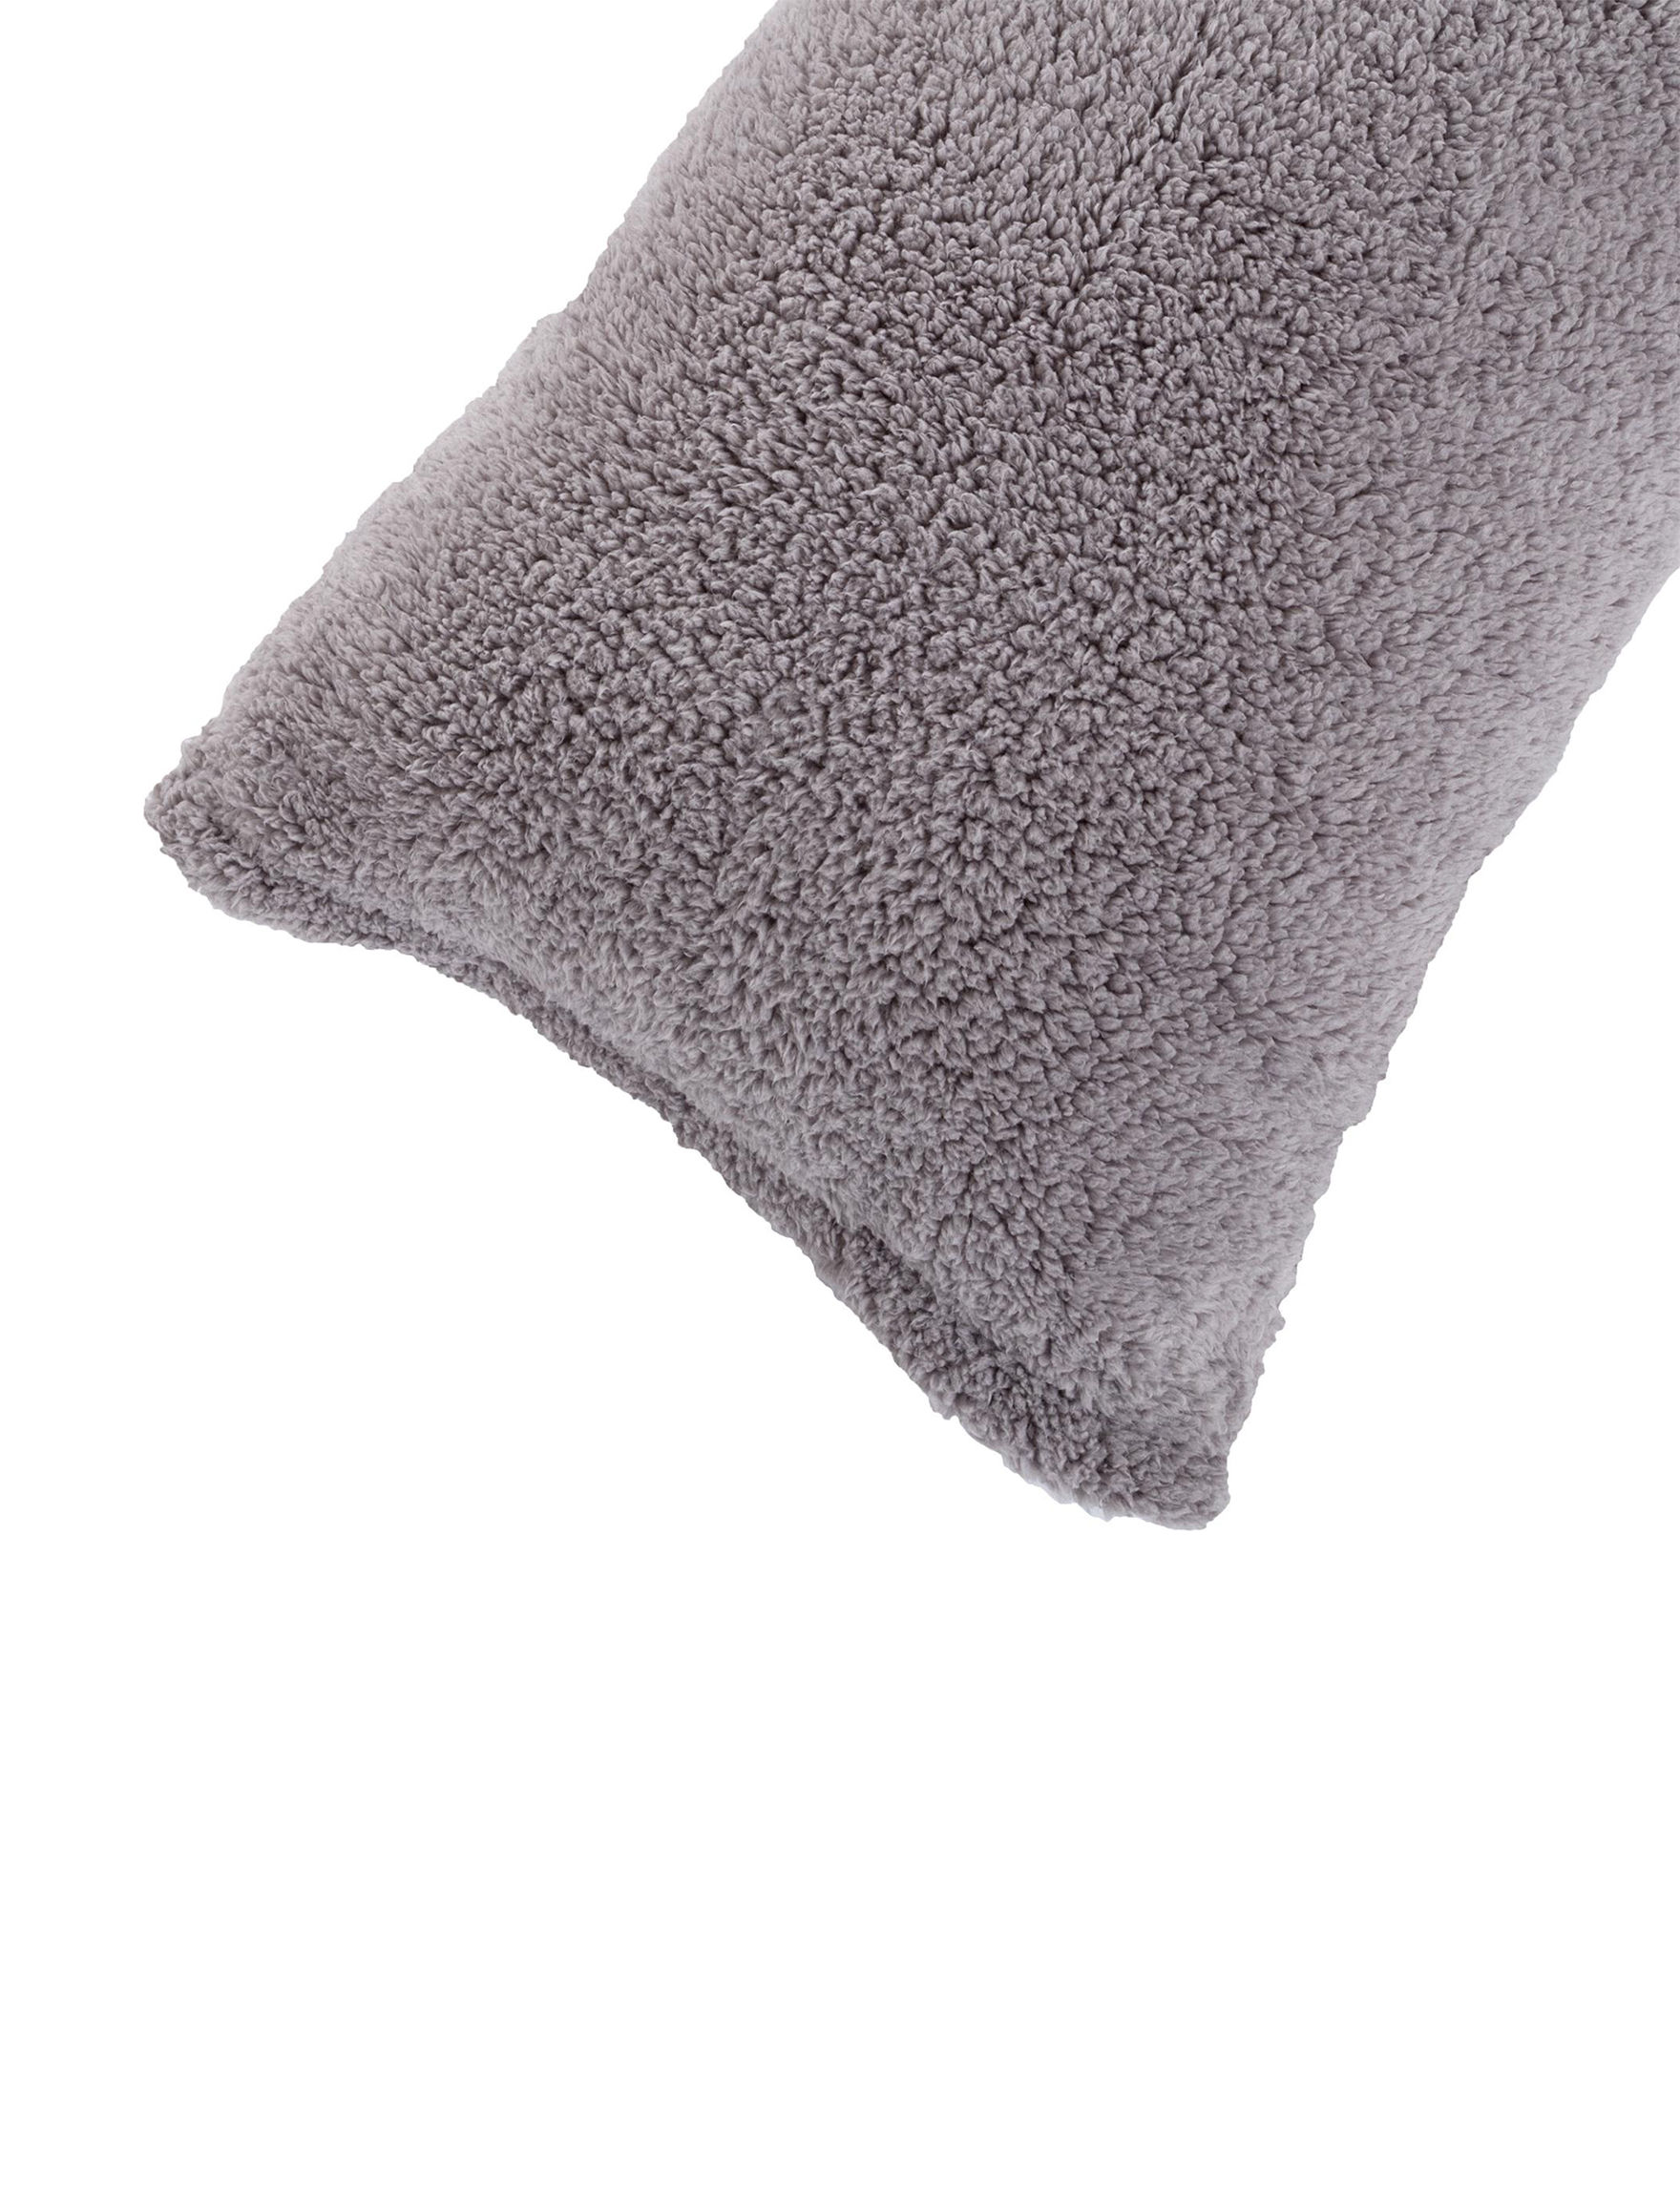 Lavish Home Grey Pillow Shams